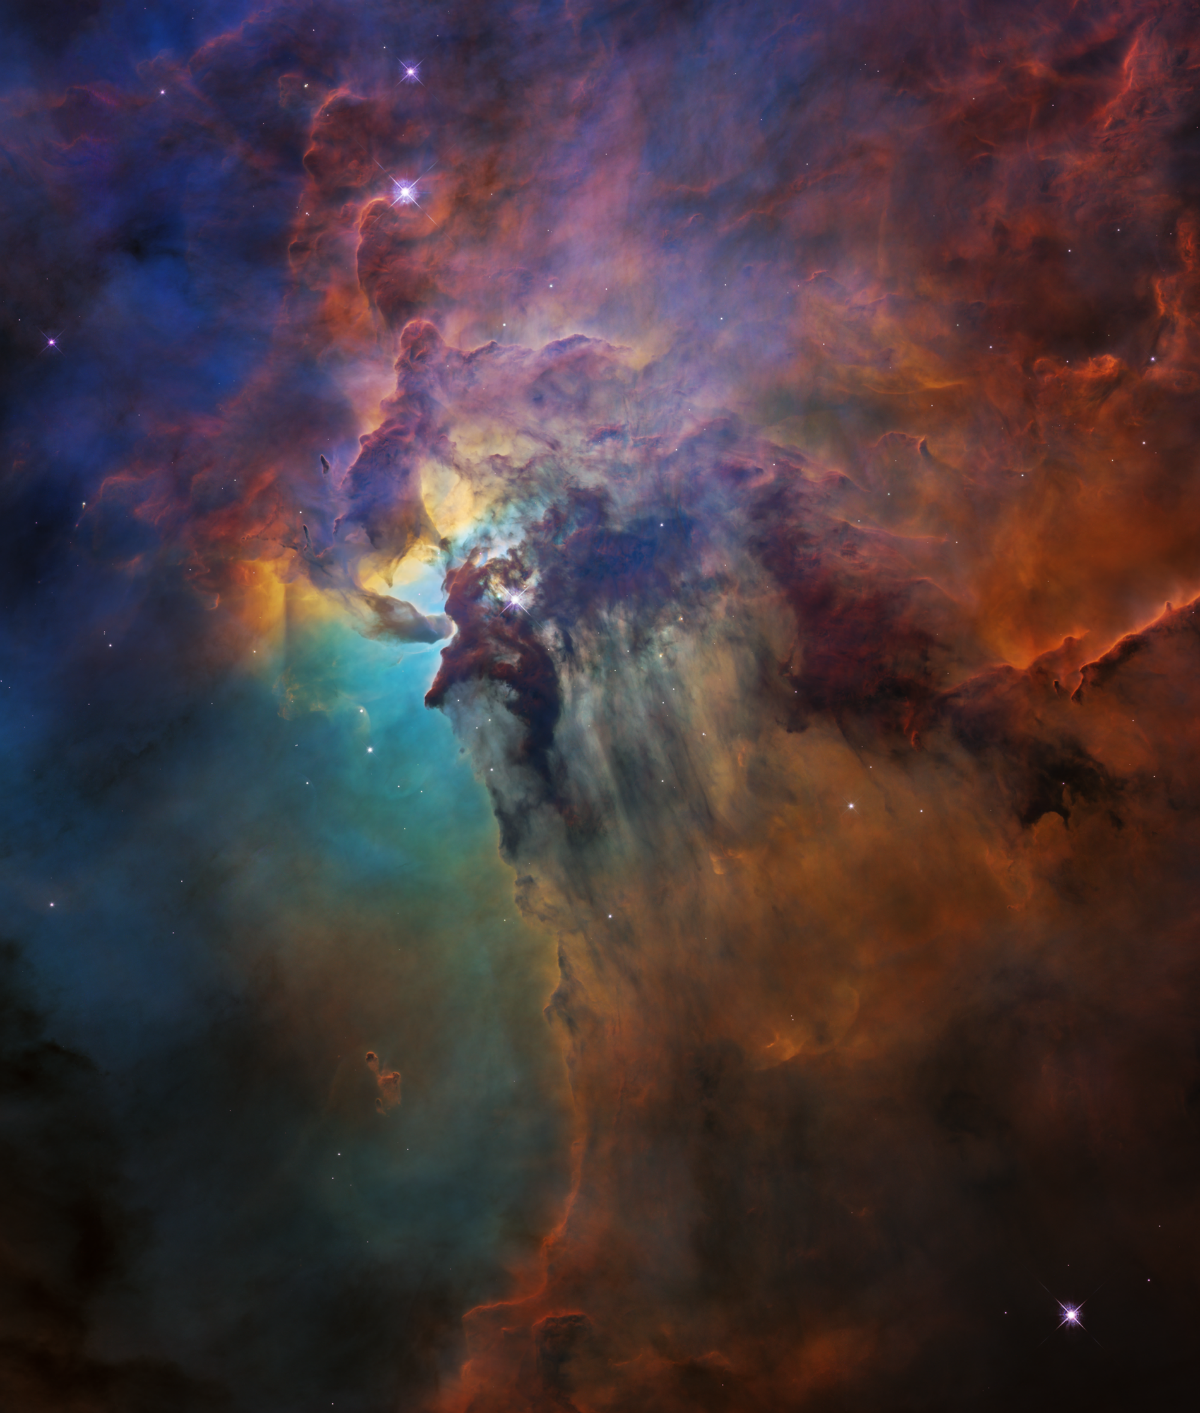 Watch This Incredible Video Of The Lagoon Nebula Captured By